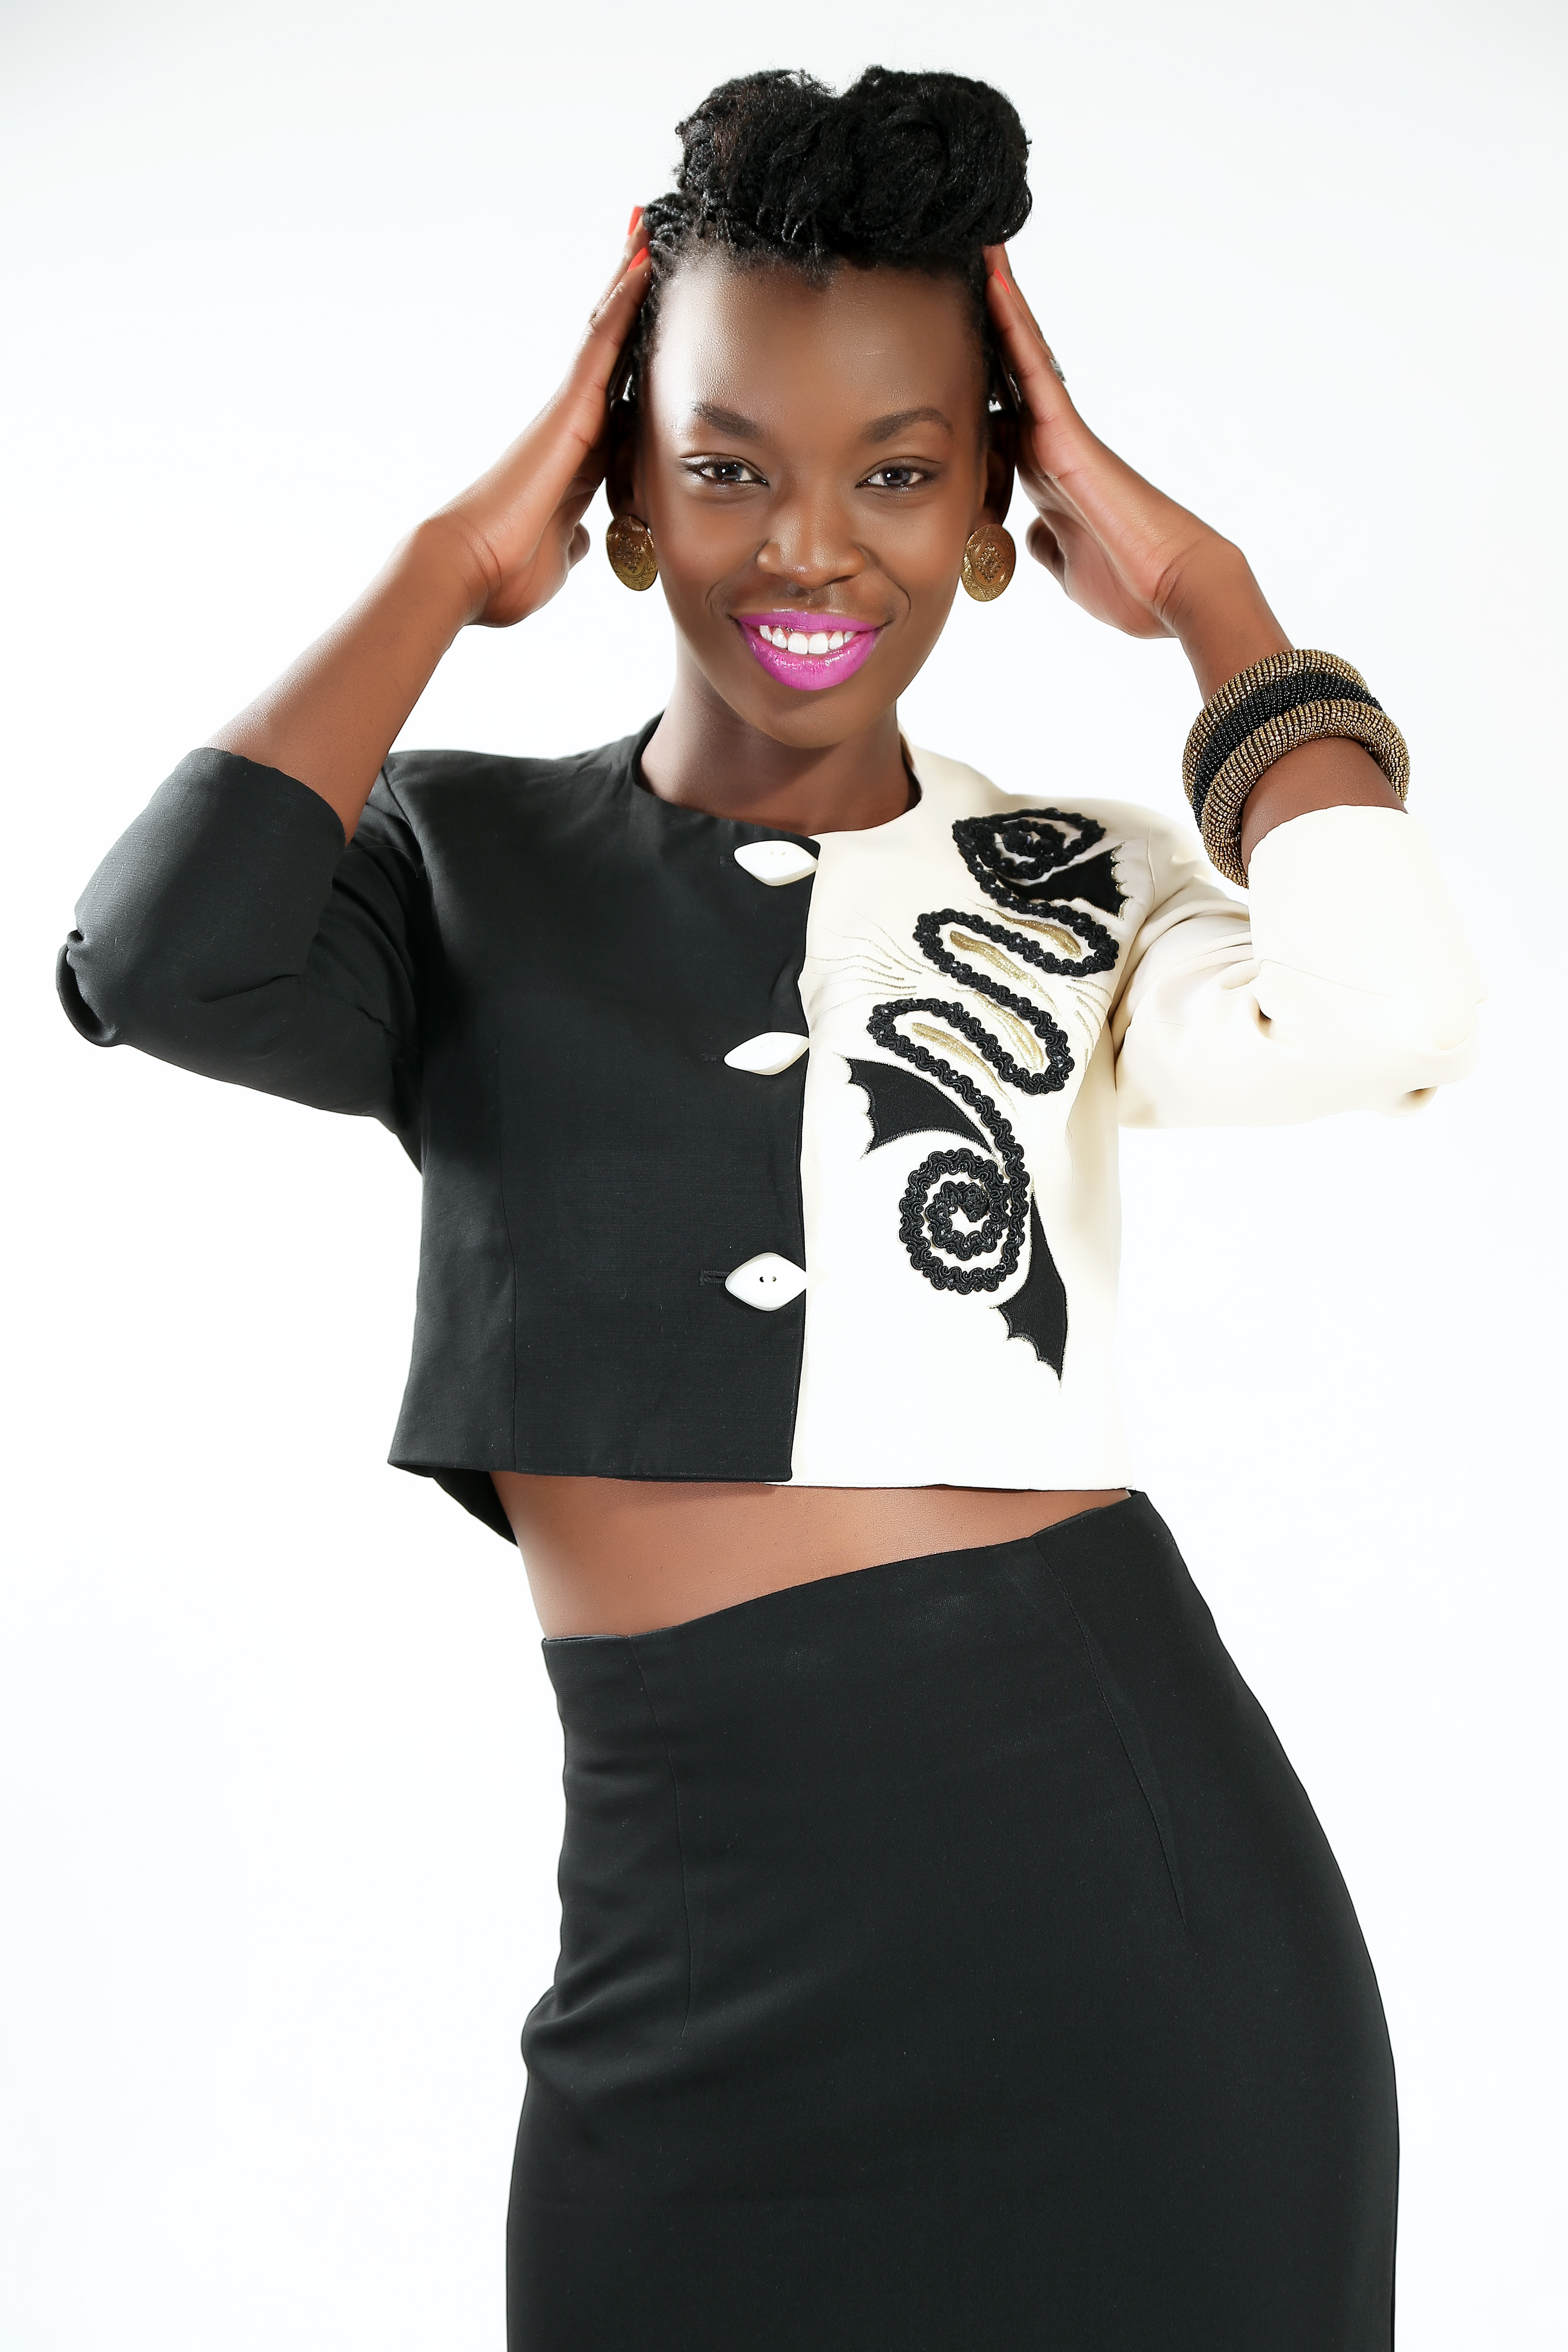 Anyiko Owoko in black and white attire